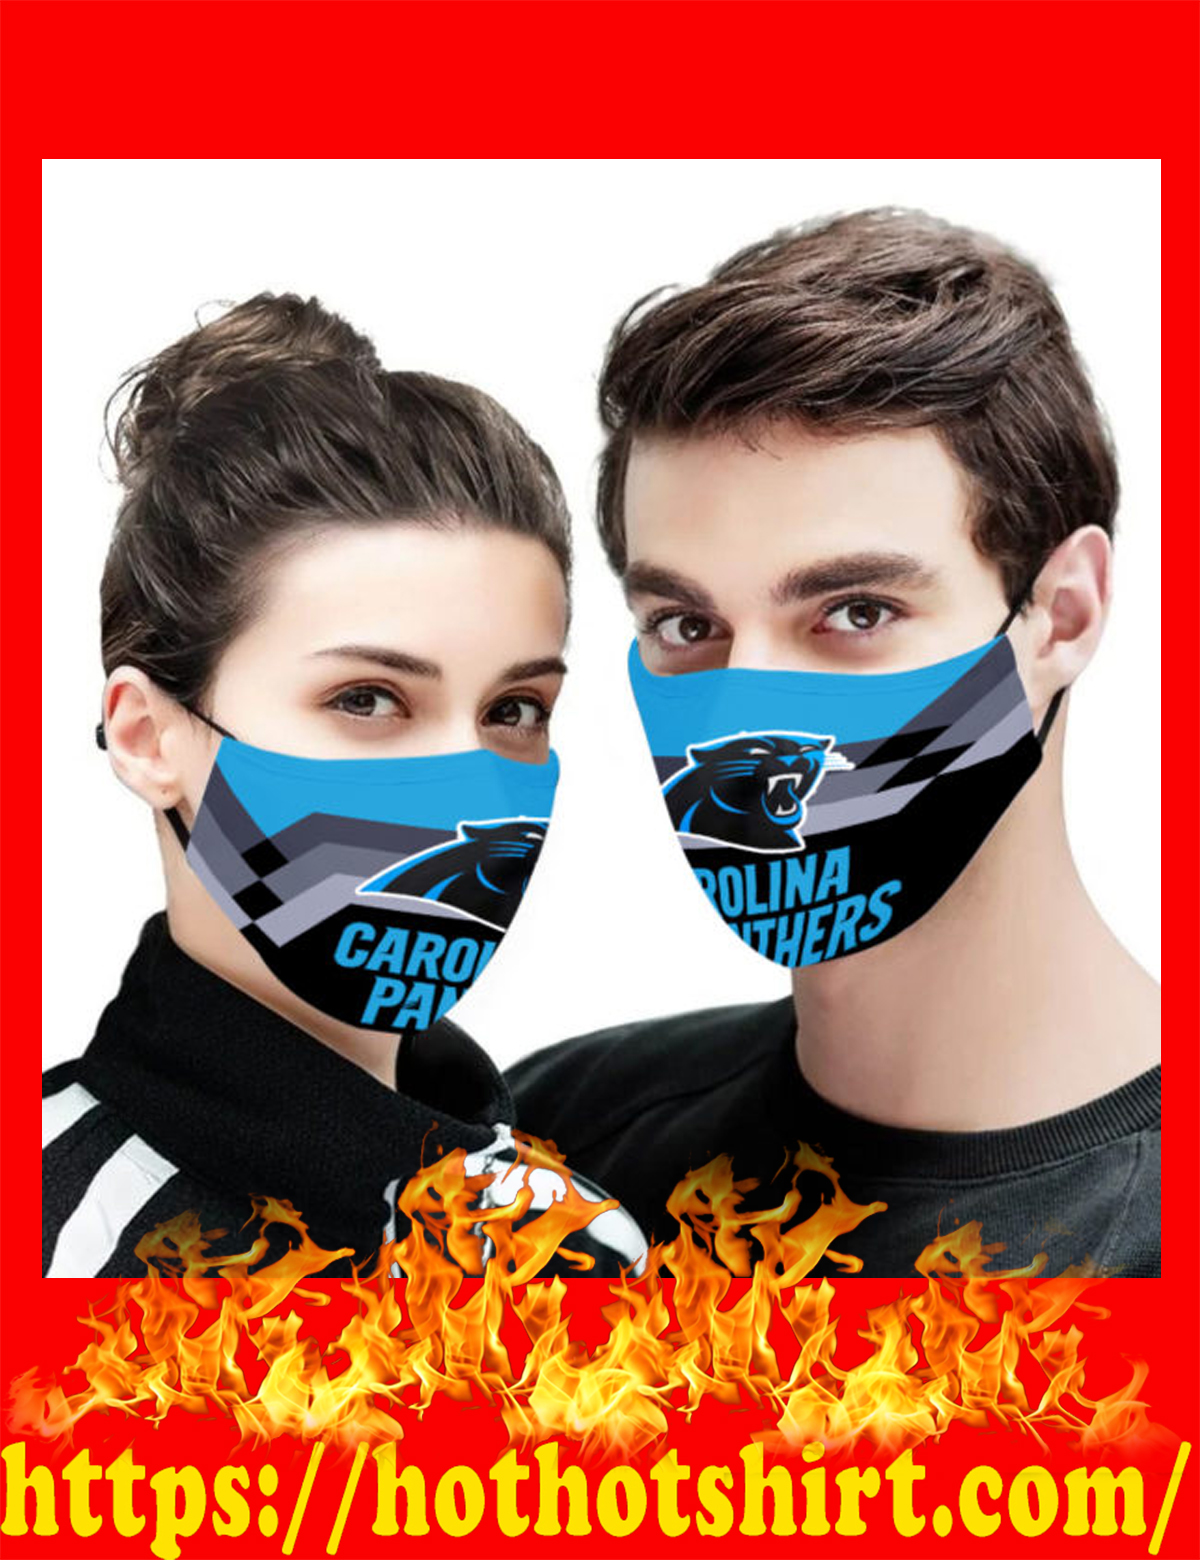 Carolina panthers face mask - detail